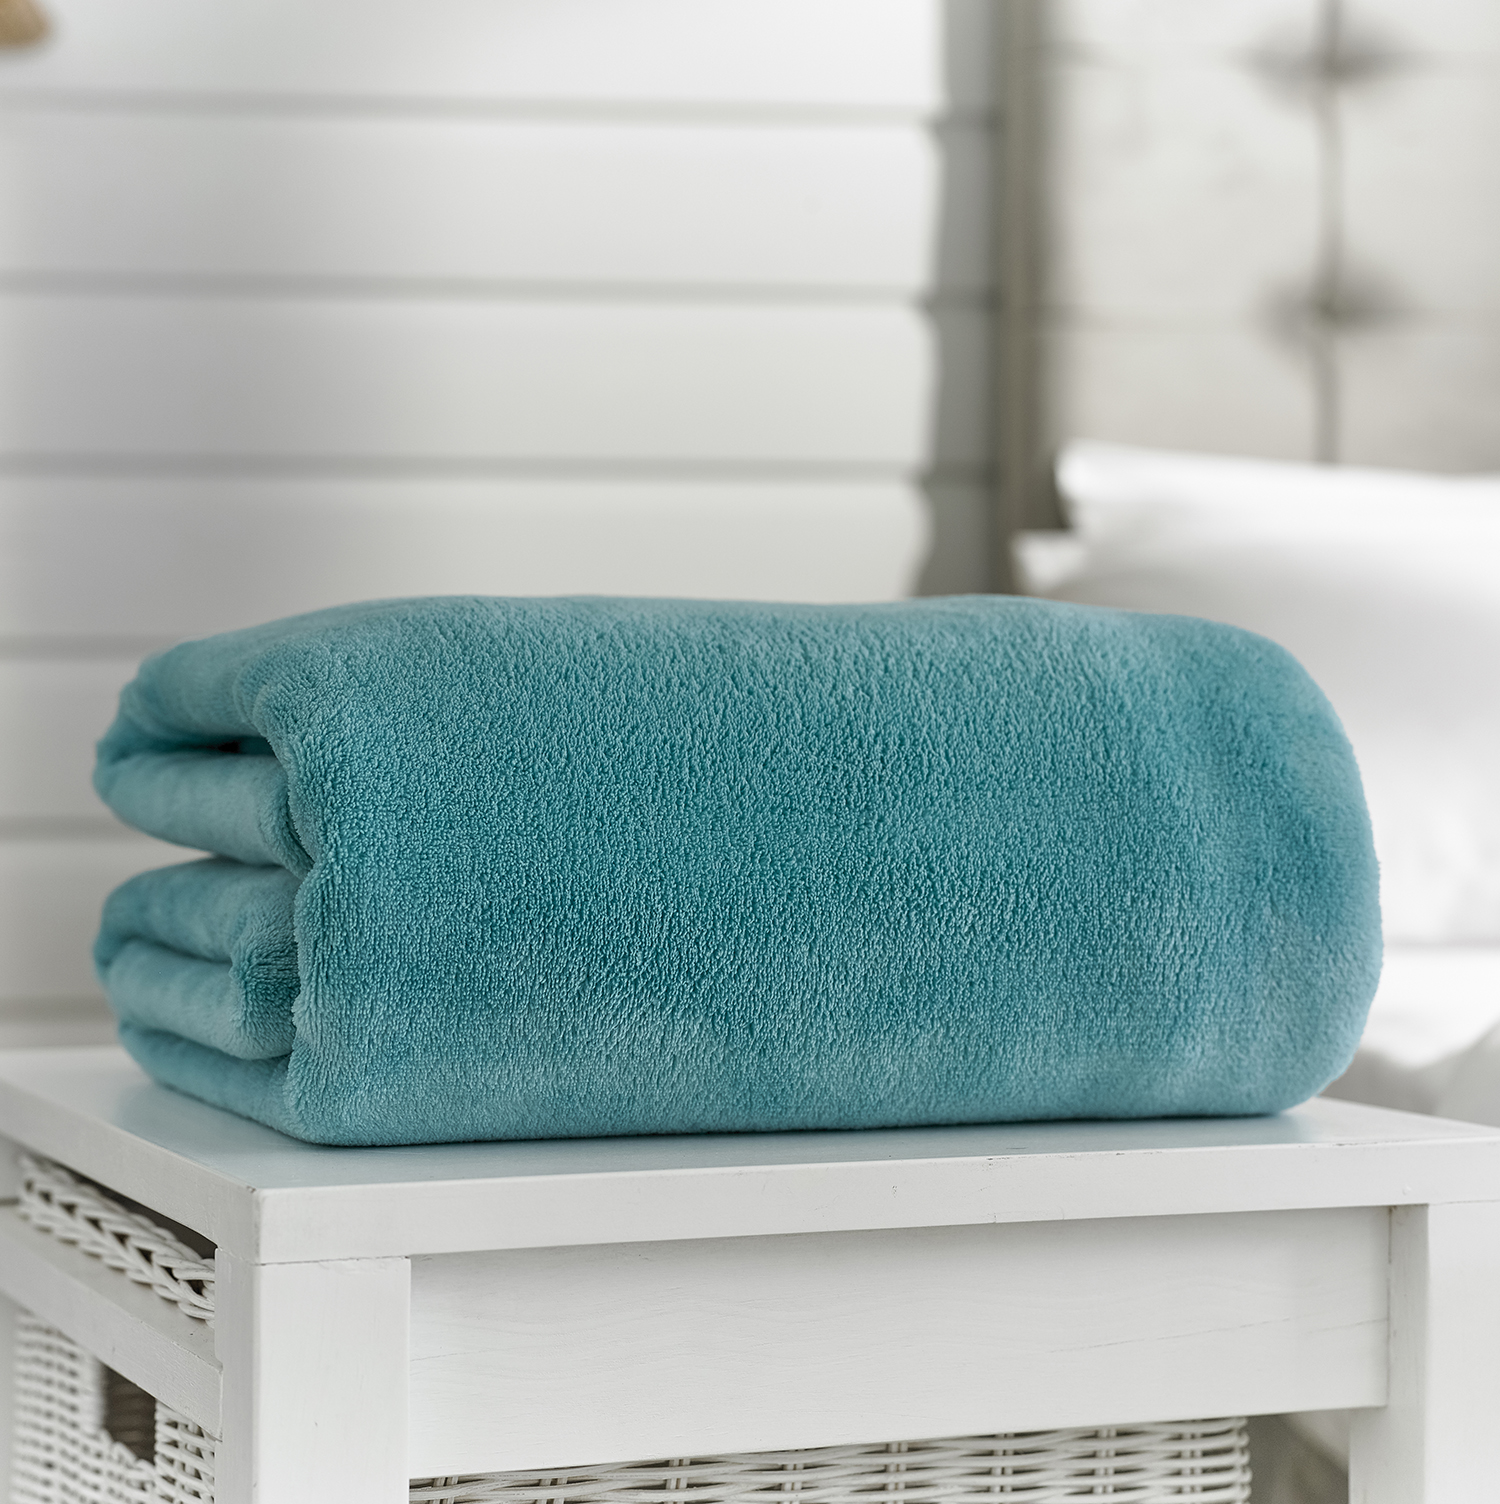 Deyongs Snuggle Touch Throw 140x180 Turquoise